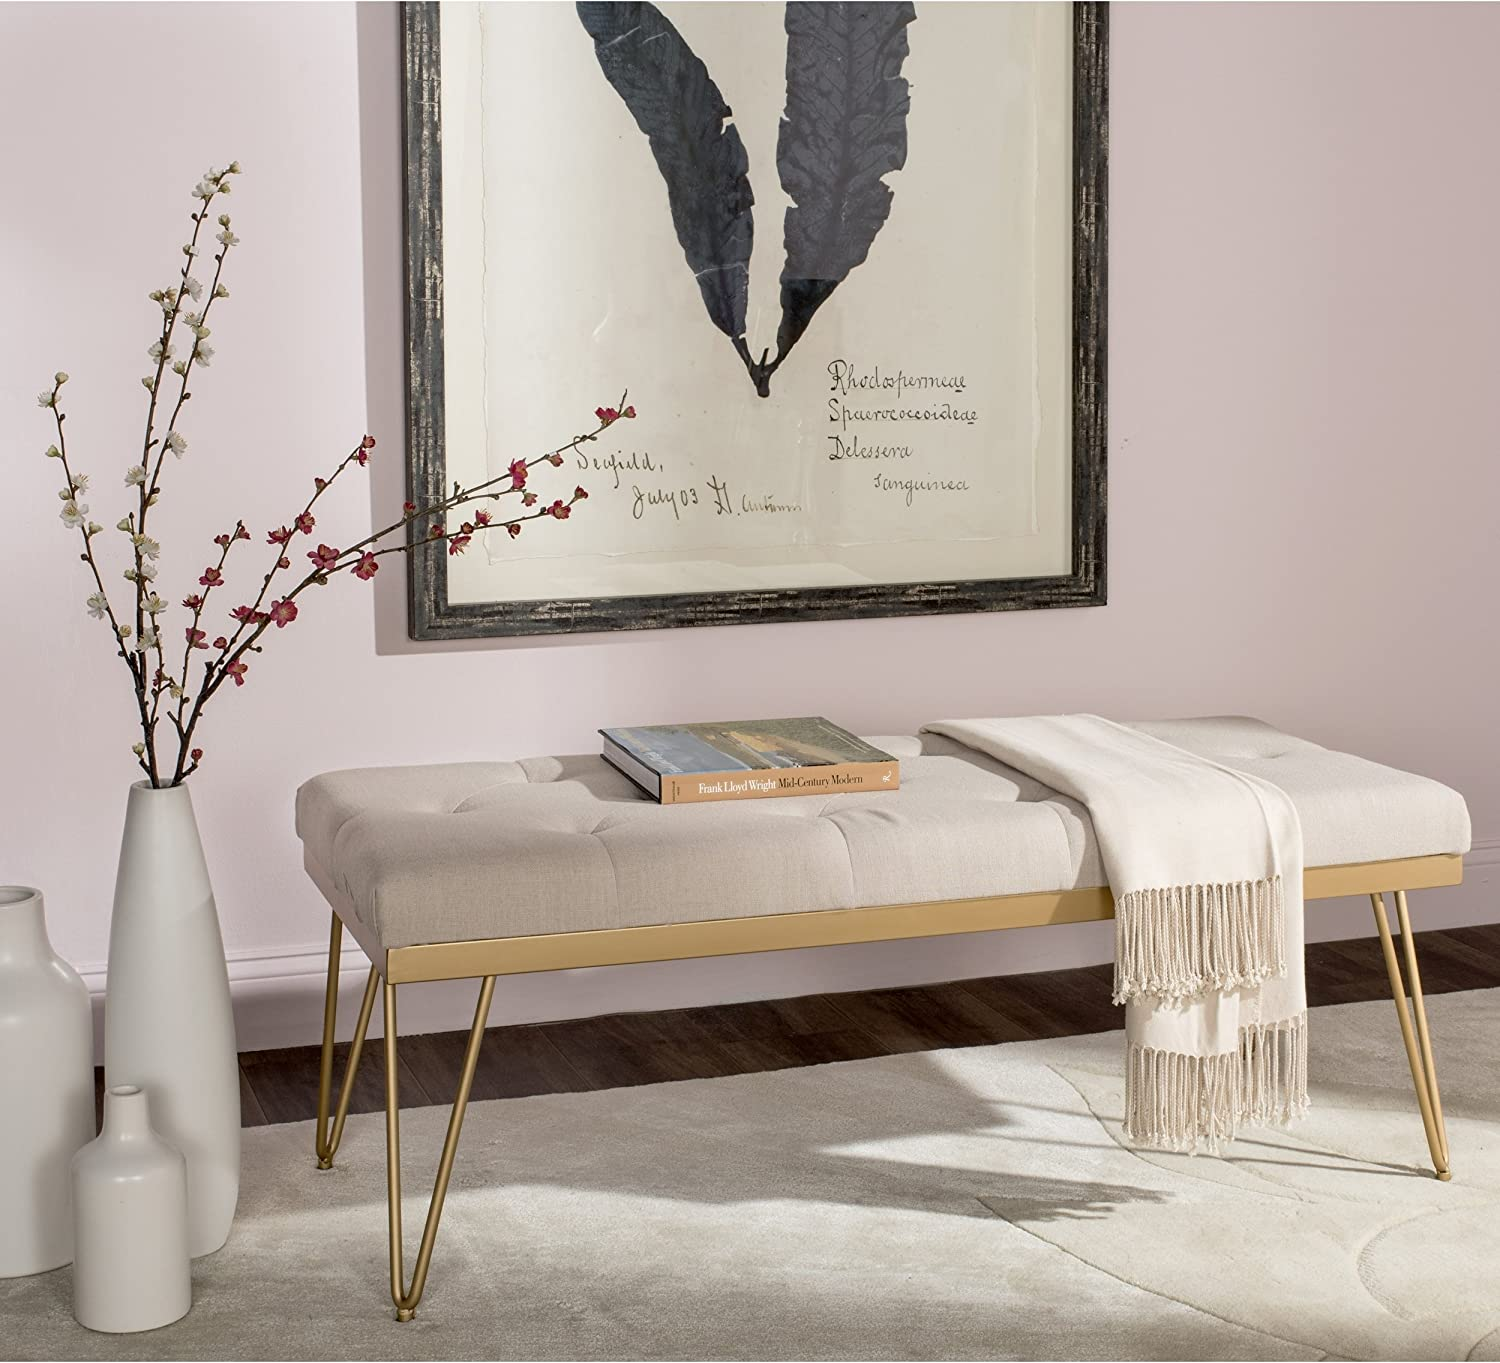 Safavieh Home Collection Marcella Bench, Beige/Gold